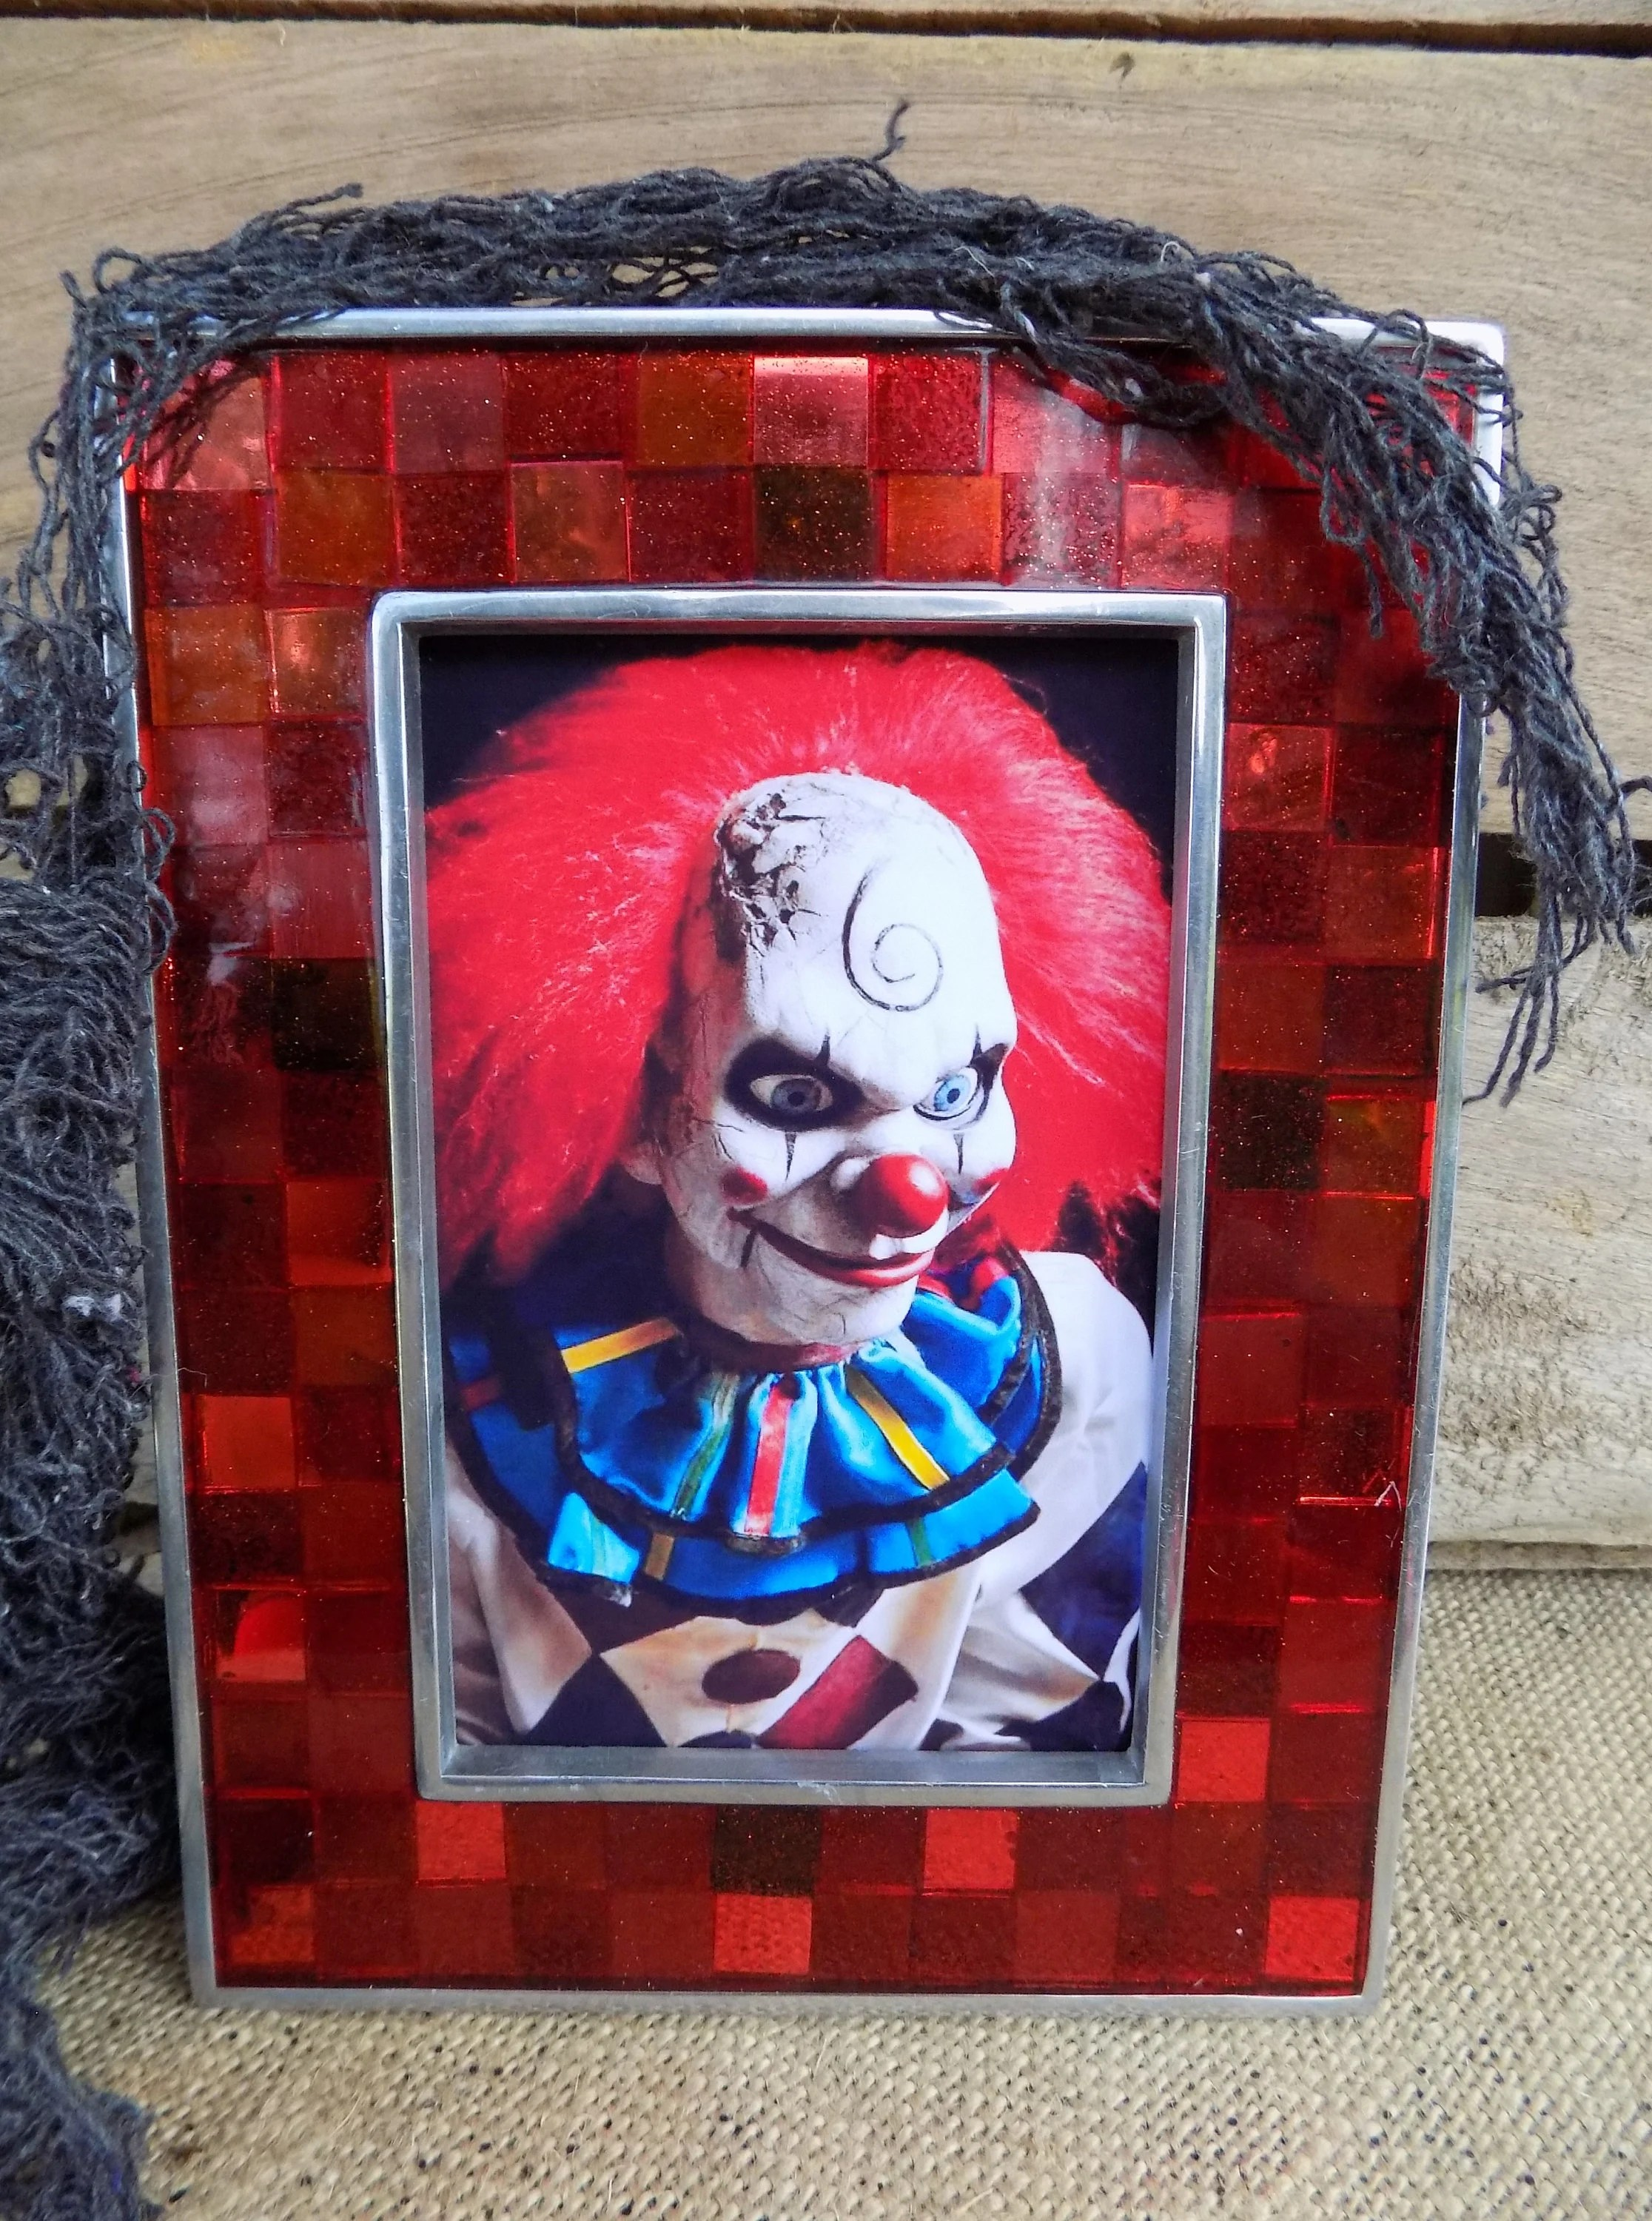 Wanddeko Clown Creepy Clown Image Framed Art Digital Image Clown Phobia Circus Clown Creepy Clown Classic Horror Collectible Horror Movie Mosaic Frame Cool